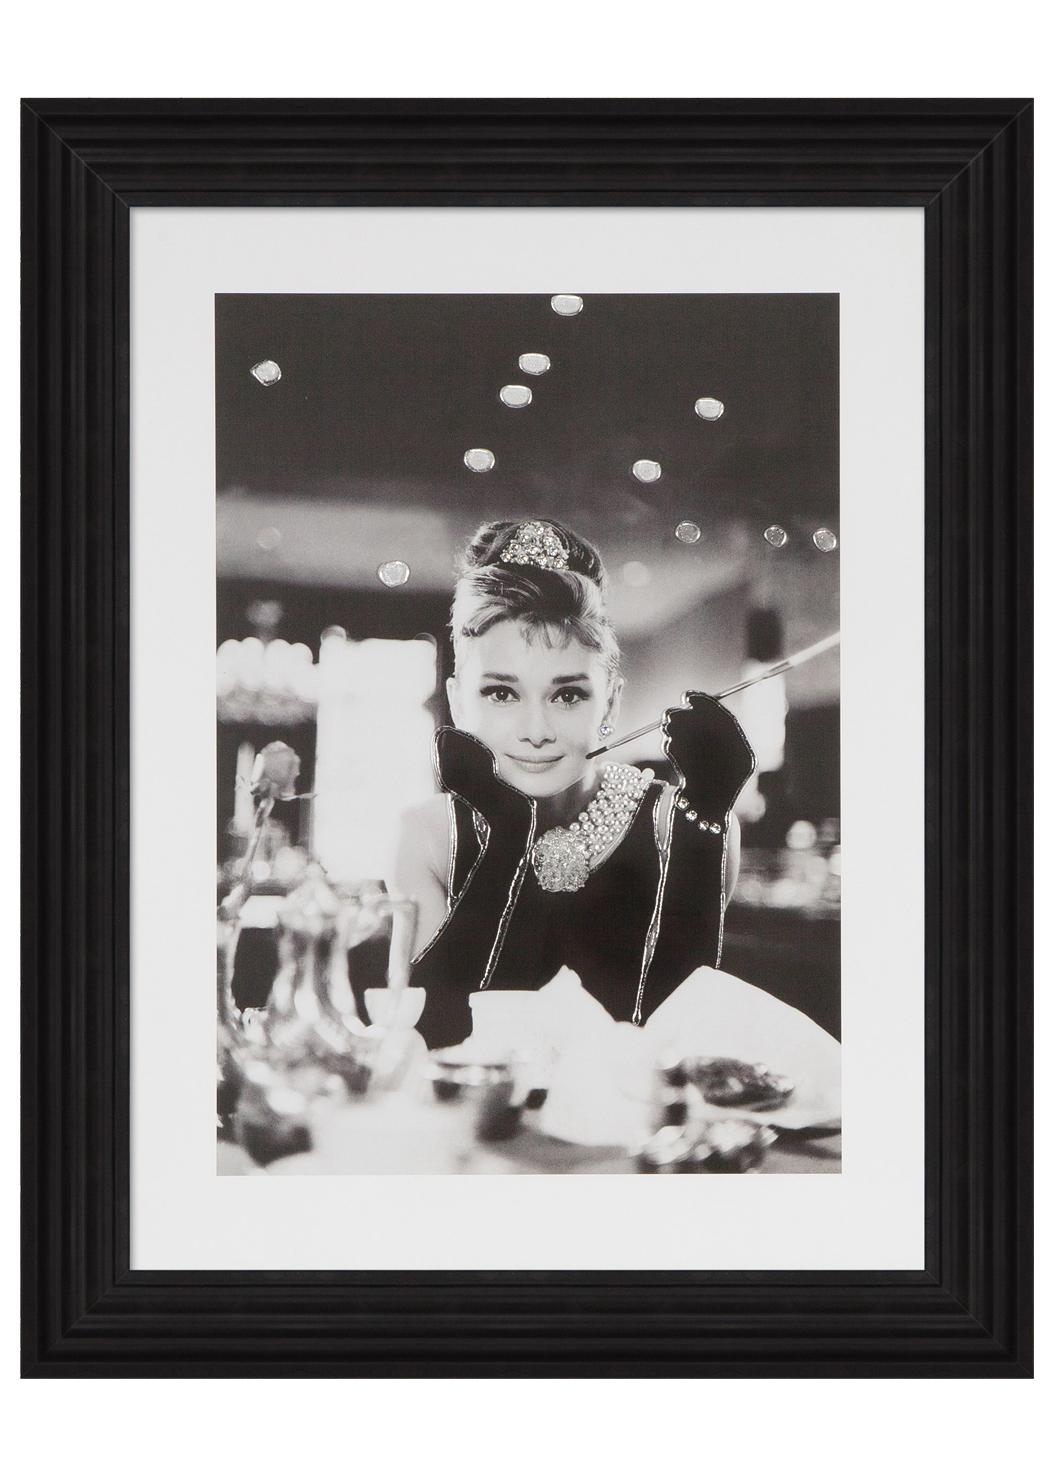 Swarovski Crystal Wall Art Exclusively At Pagazzi! – Pagazzi Blog With Glamorous Audrey Hepburn Wall Art (View 2 of 20)